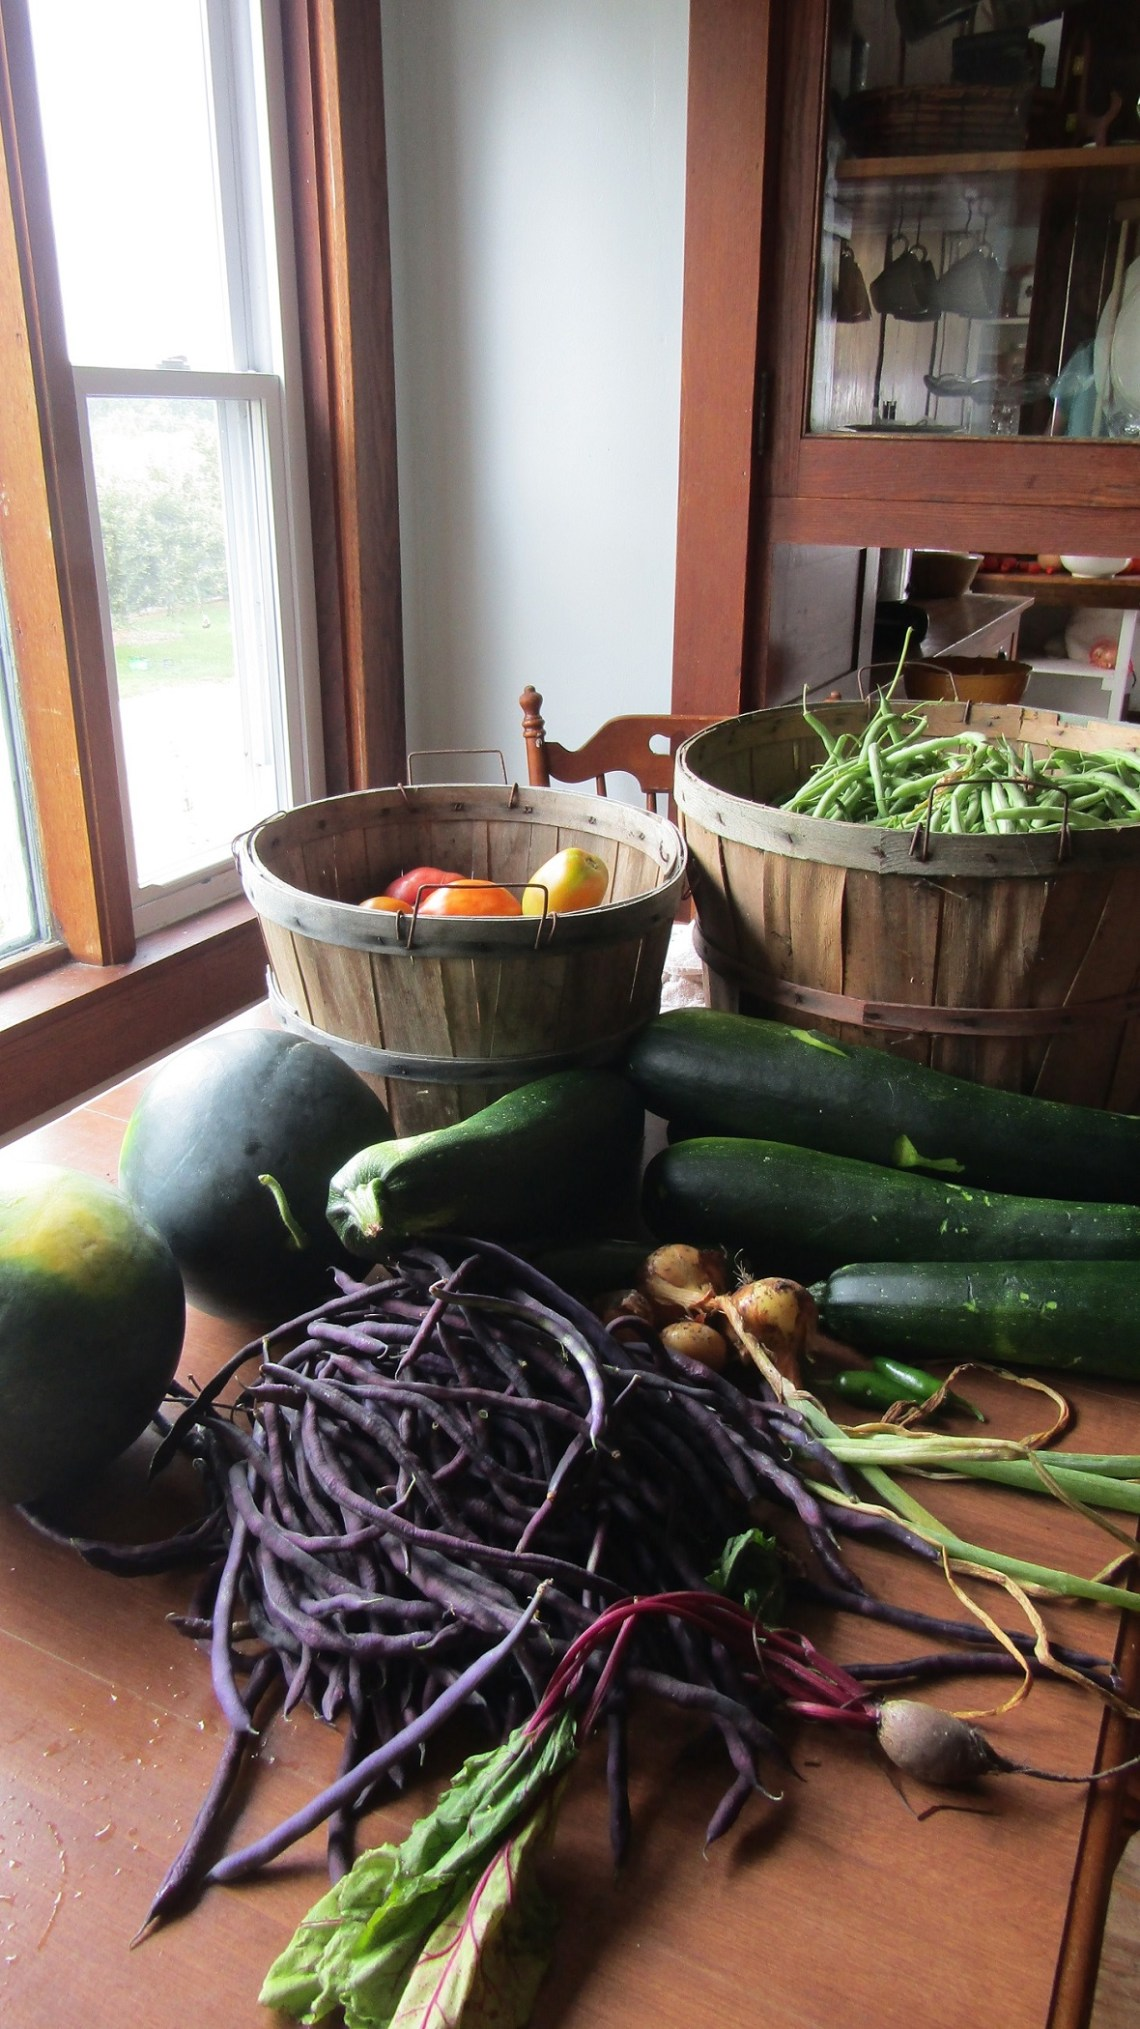 Bringing in the Harvest: Preserving Your Bounty